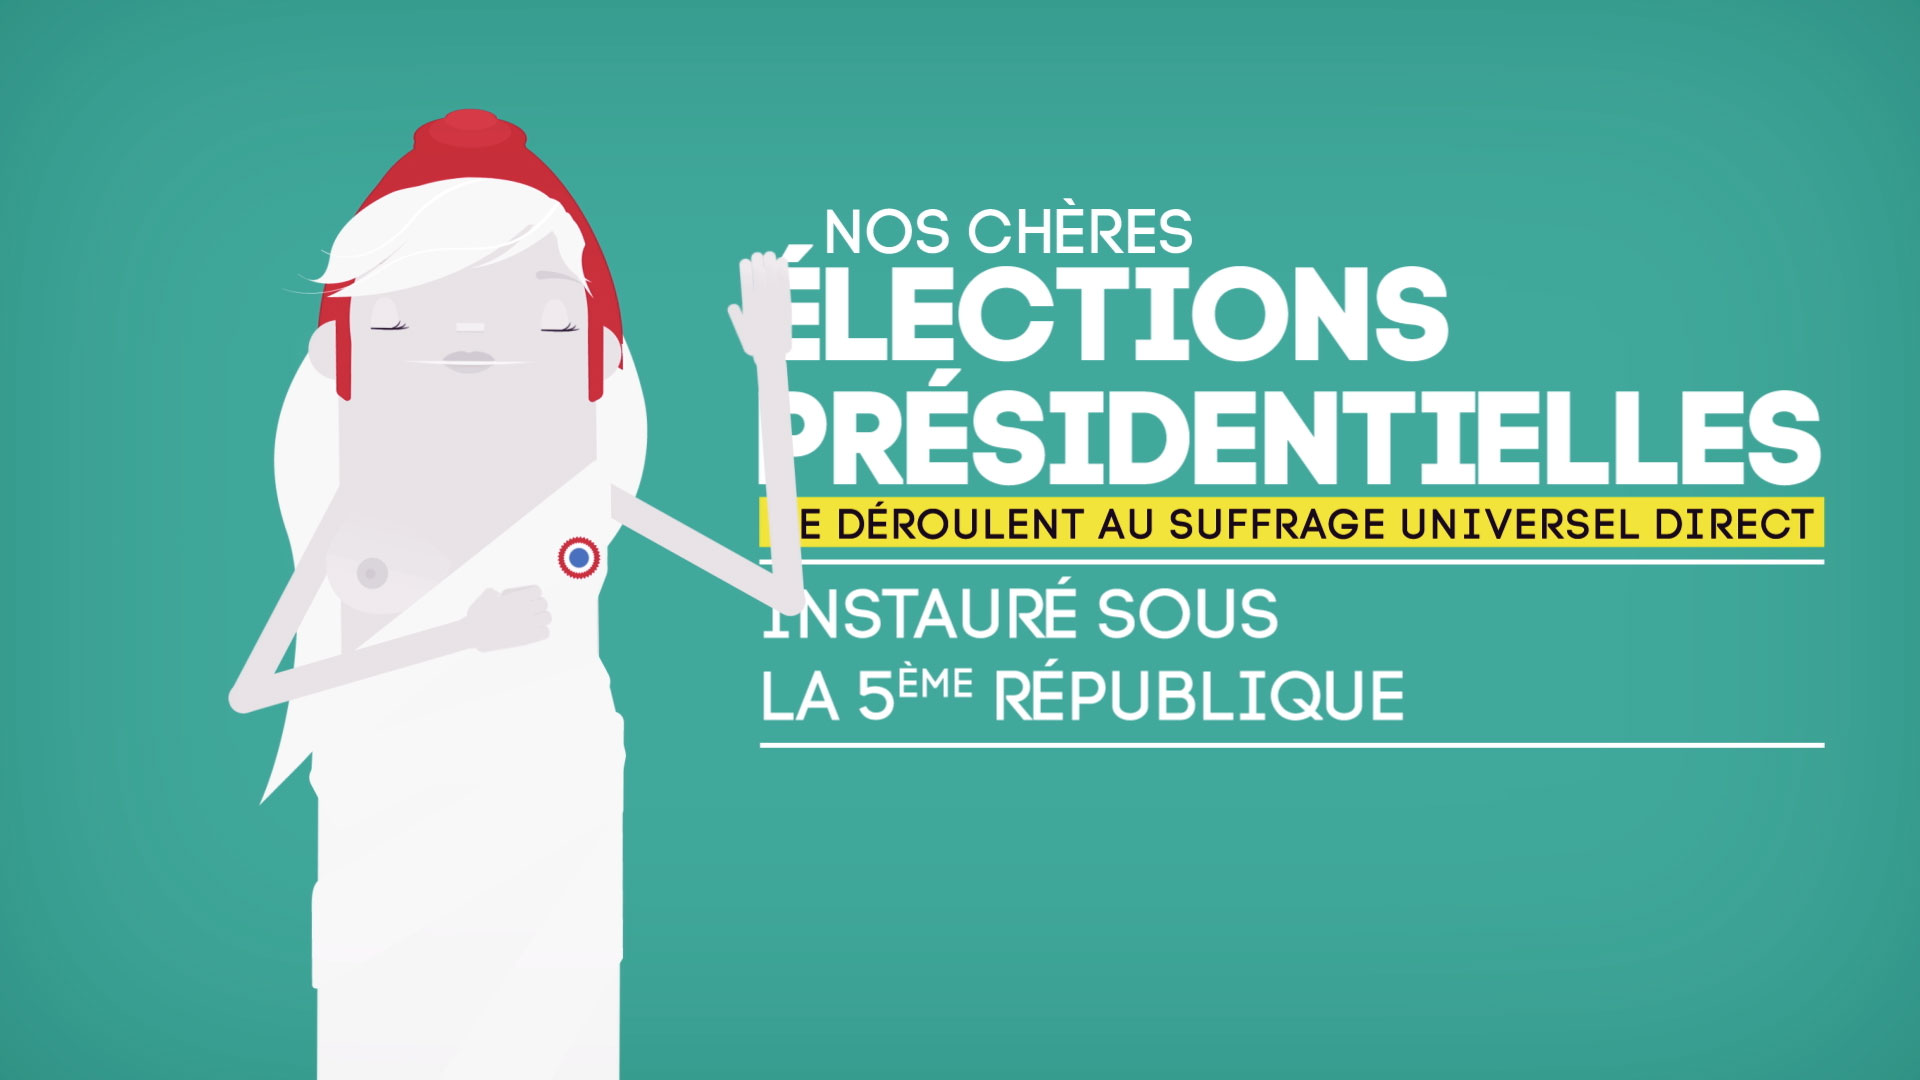 NOS-CHERES-ELECTIONS-02.jpg